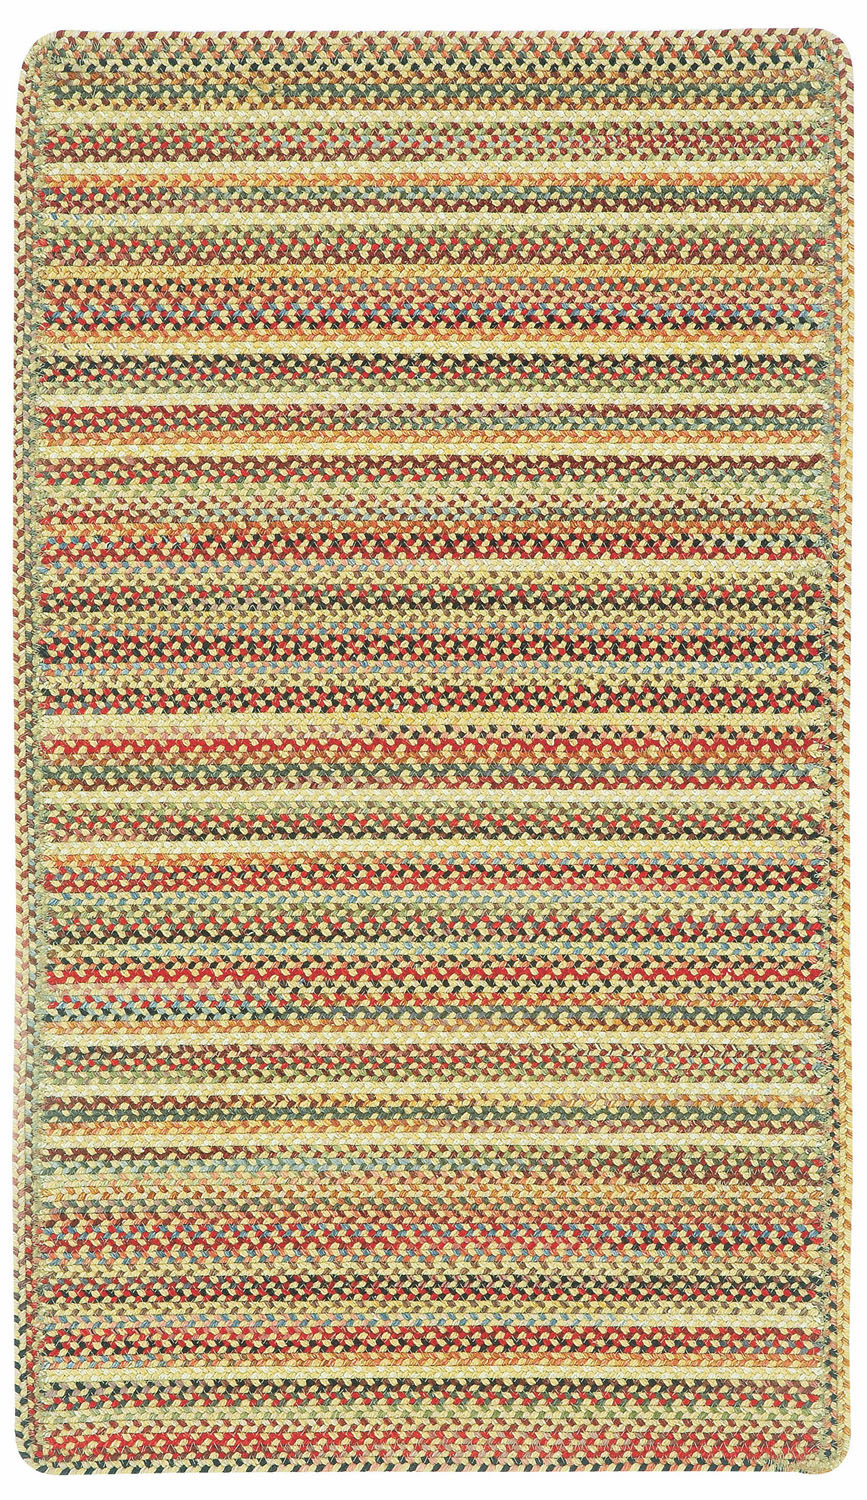 Hand-Braided Gold Rug